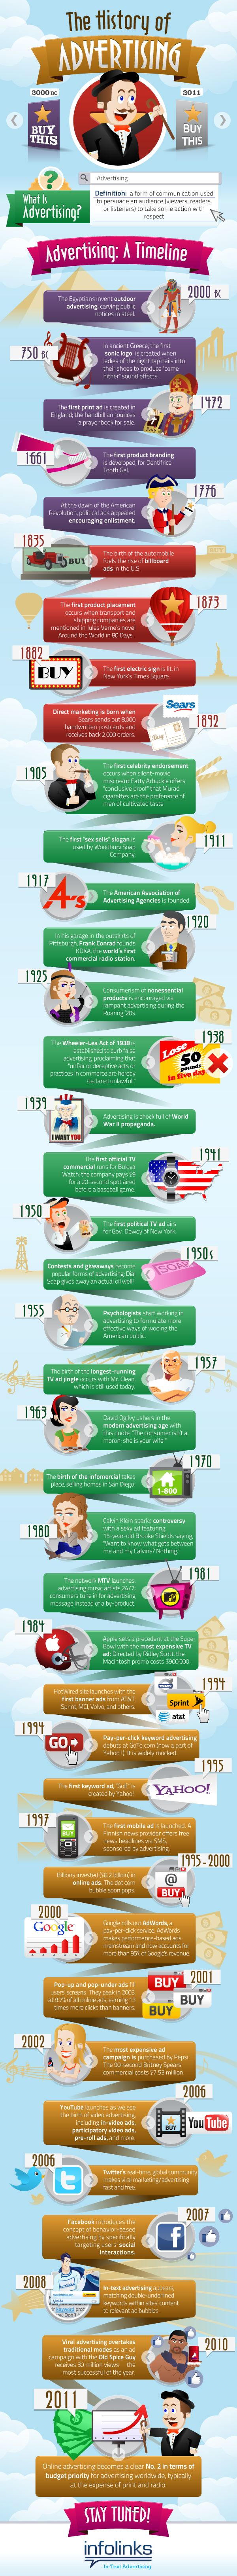 History of Advertising Infographic  In History of Advertising the World Wide Web is a recent phenomenon.